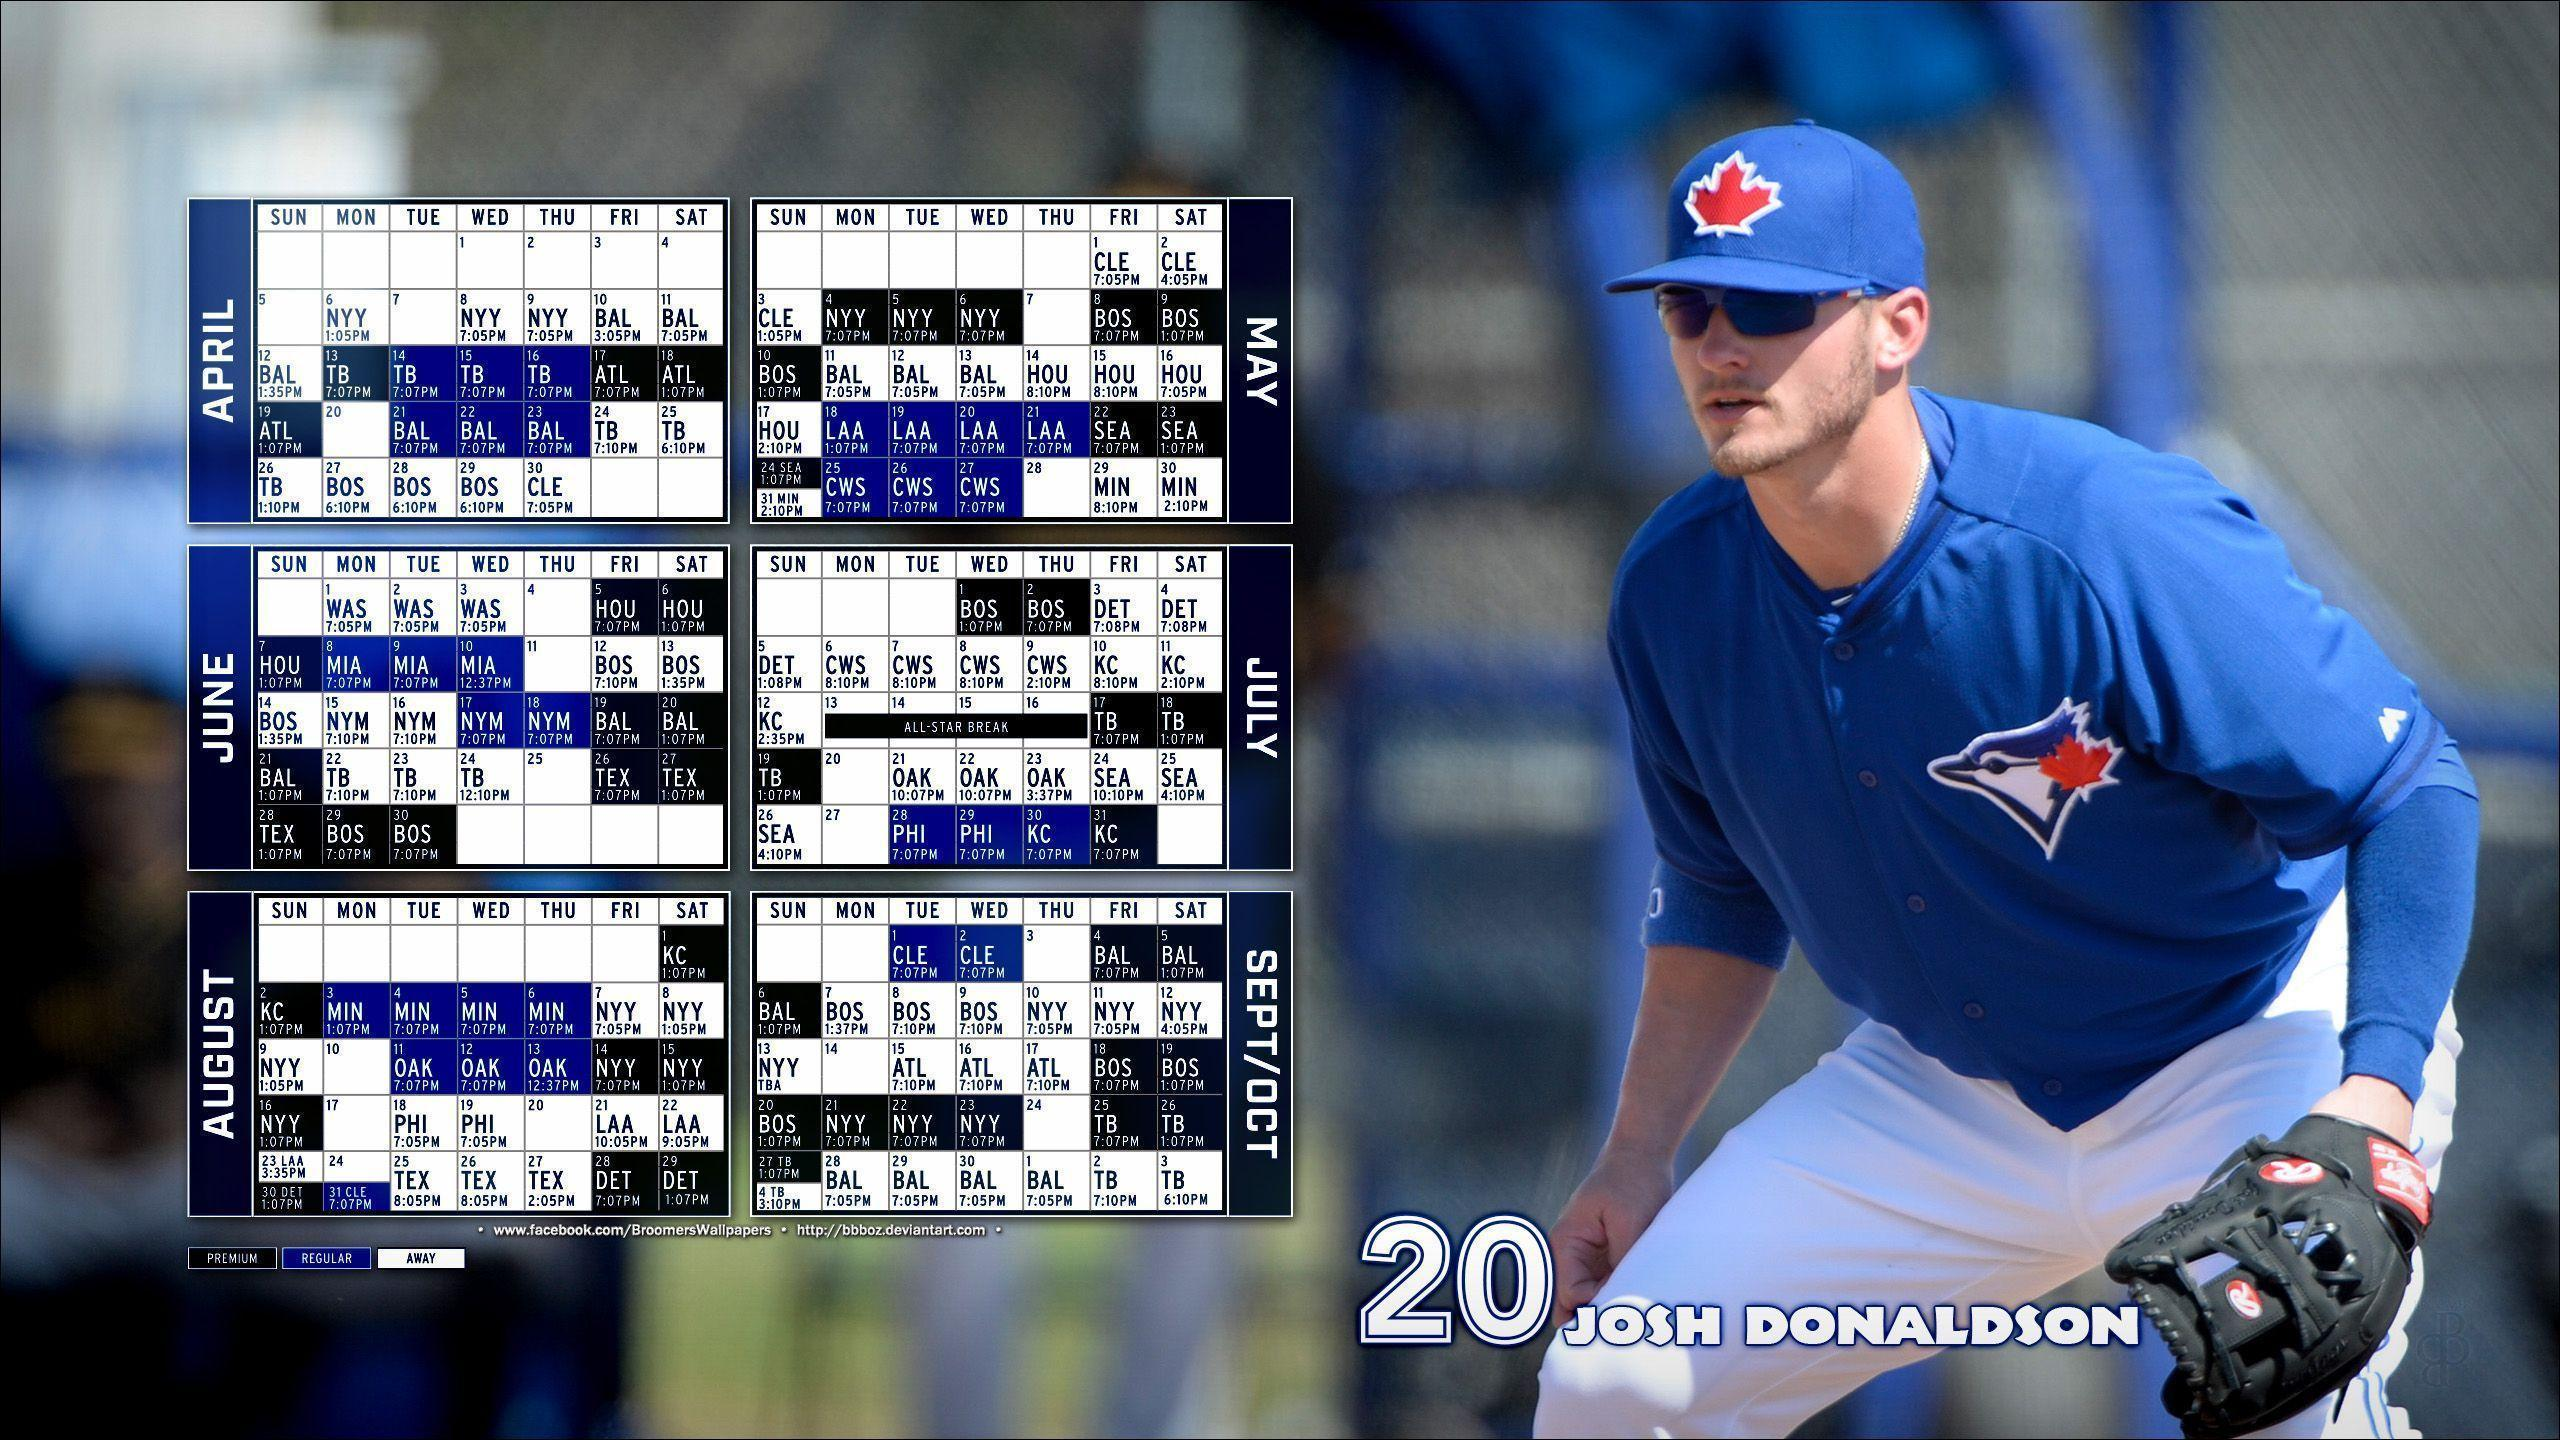 2015 Toronto Blue Jays schedule Wallpapers 16x9 by bbboz